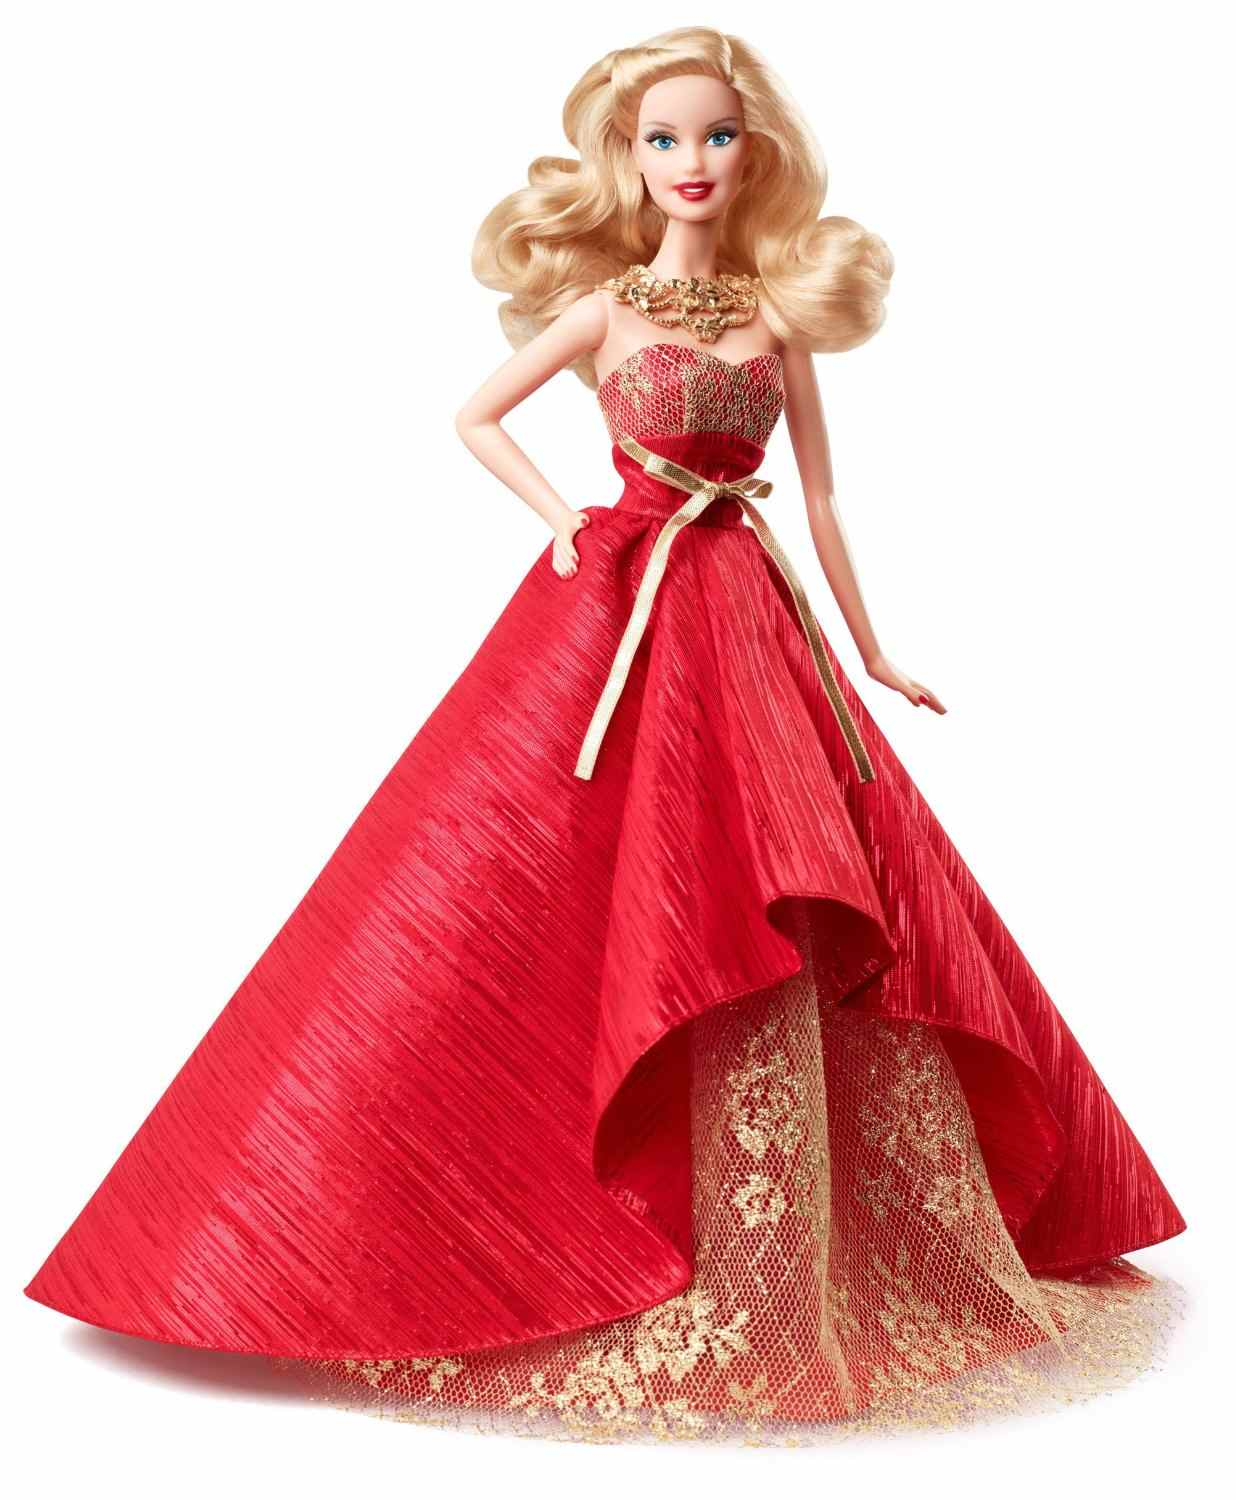 barbie dolls the most popular toys for girls